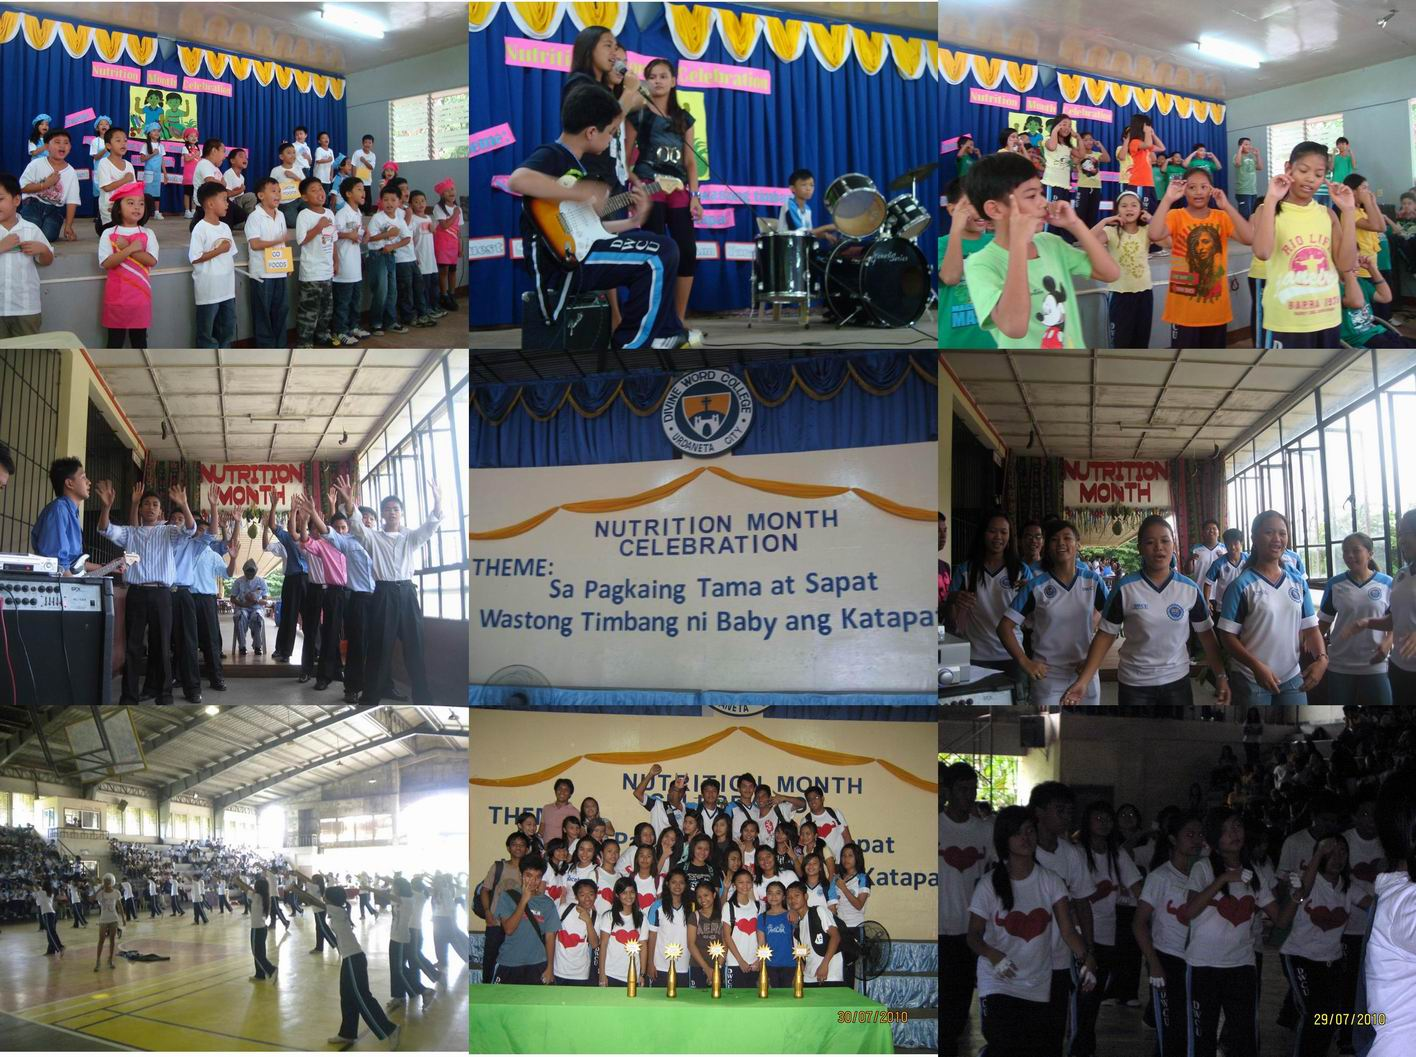 essay on nutrition month celebration Happy day at school essay google glass research paper enfield planning map for essay roland barthes essay on wrestling essay on nutrition month celebration.